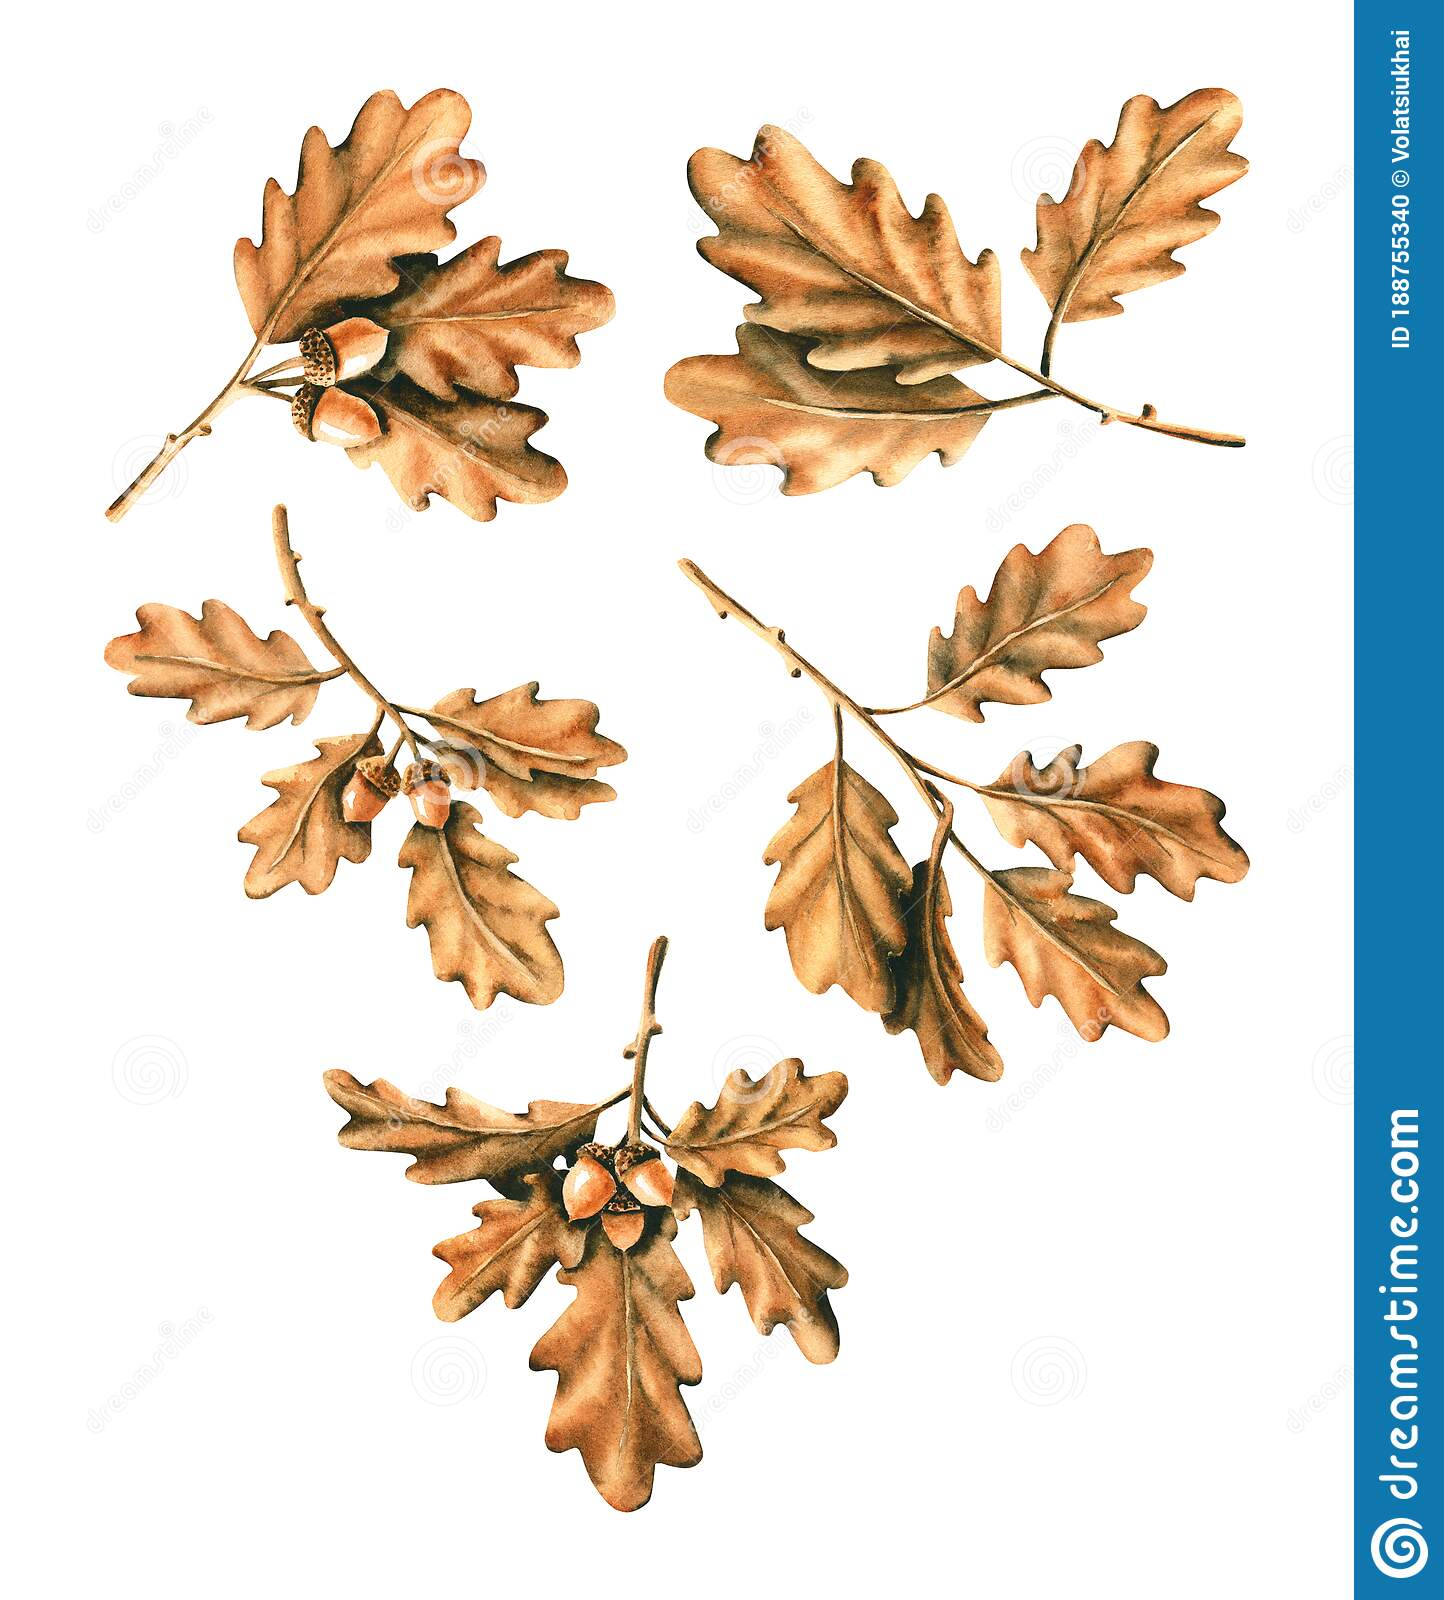 Set Of Watercolor Branches With Leaves And Acorns Hand Drawn Illustration Is Isolated On White Painted Golden Foliage Stock Illustration Illustration Of Boho Background 188755340